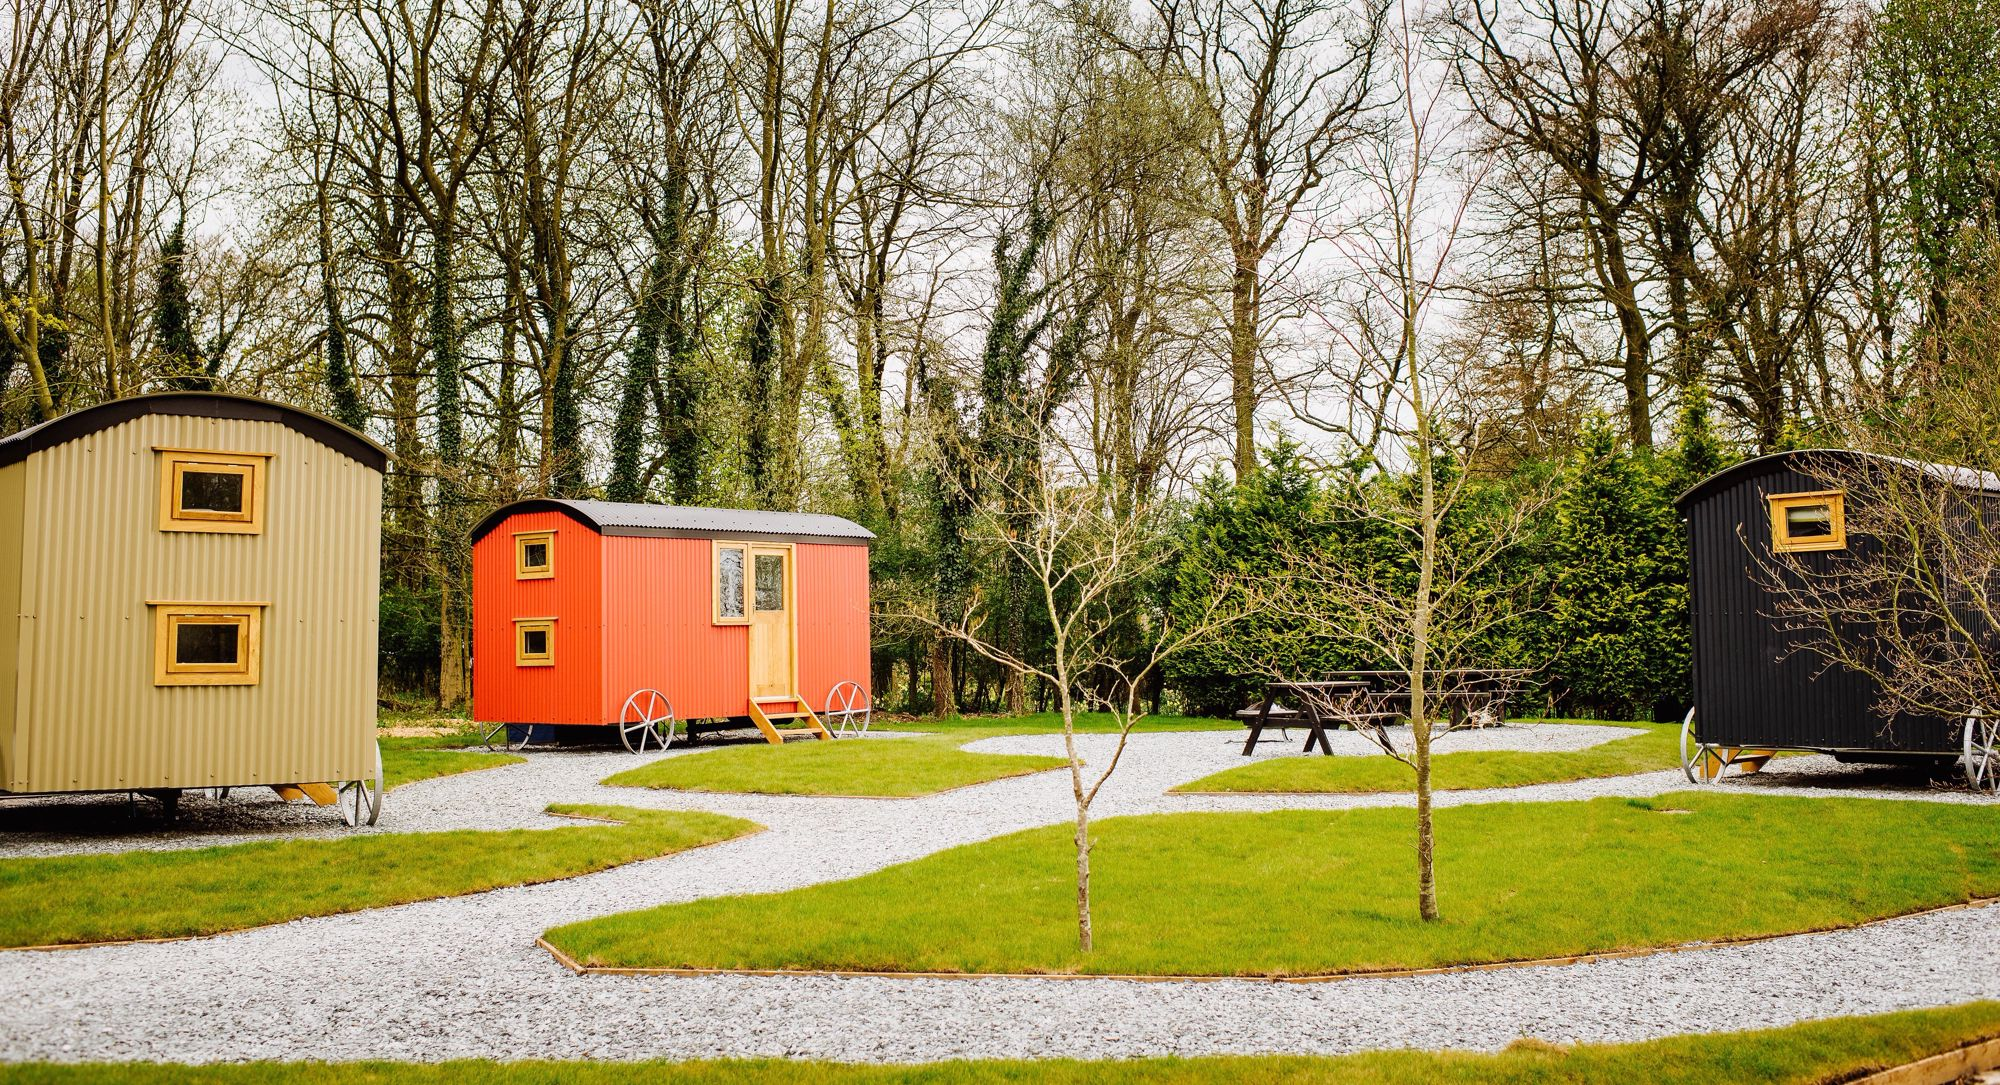 Glamping Sites Open All Year